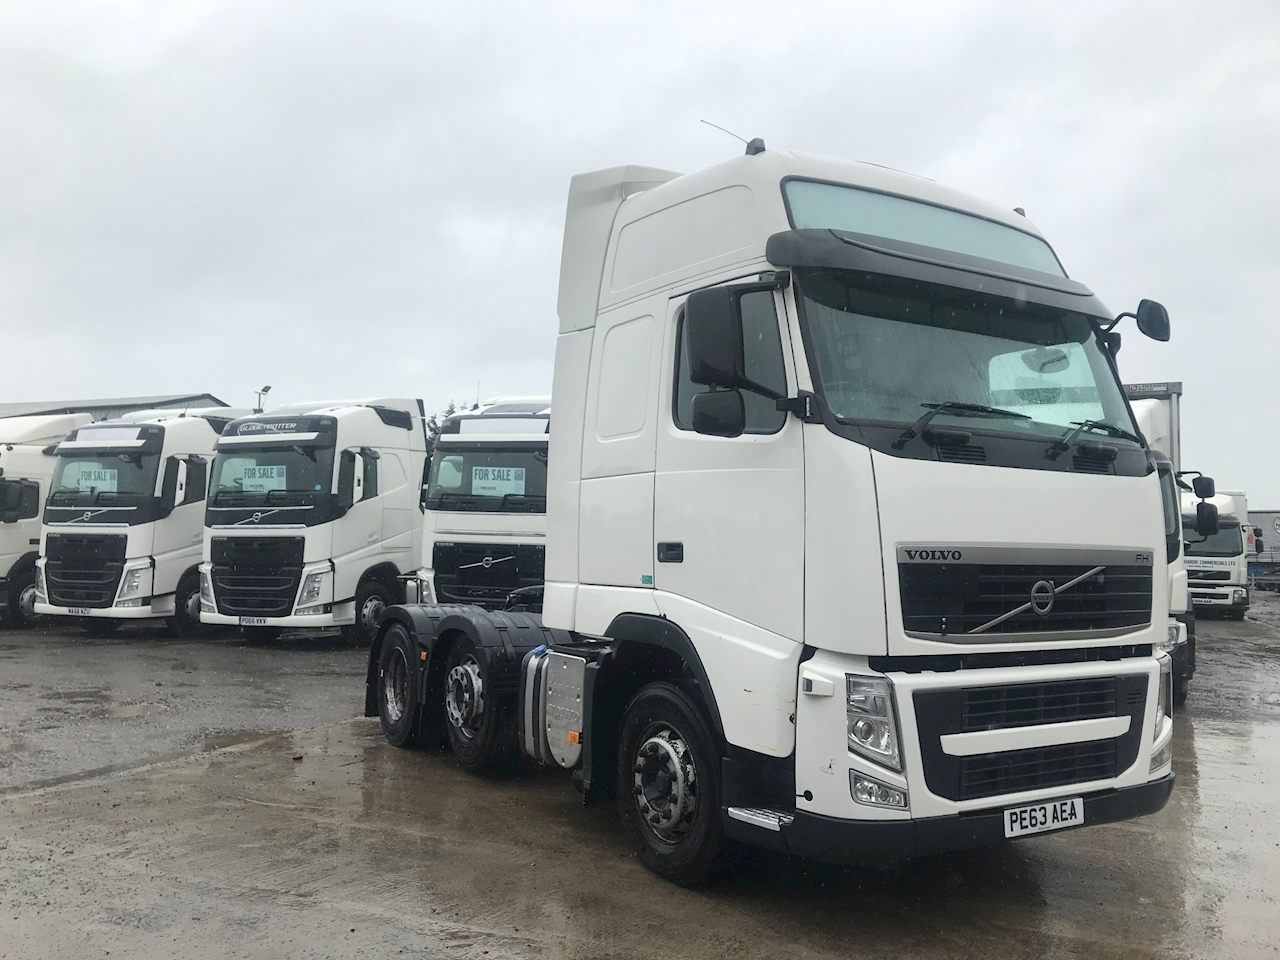 Volvo Fh FH 460 6X2 GTXL 12.8 2dr Tractor (Heavy Haulage) I-Shift Diesel